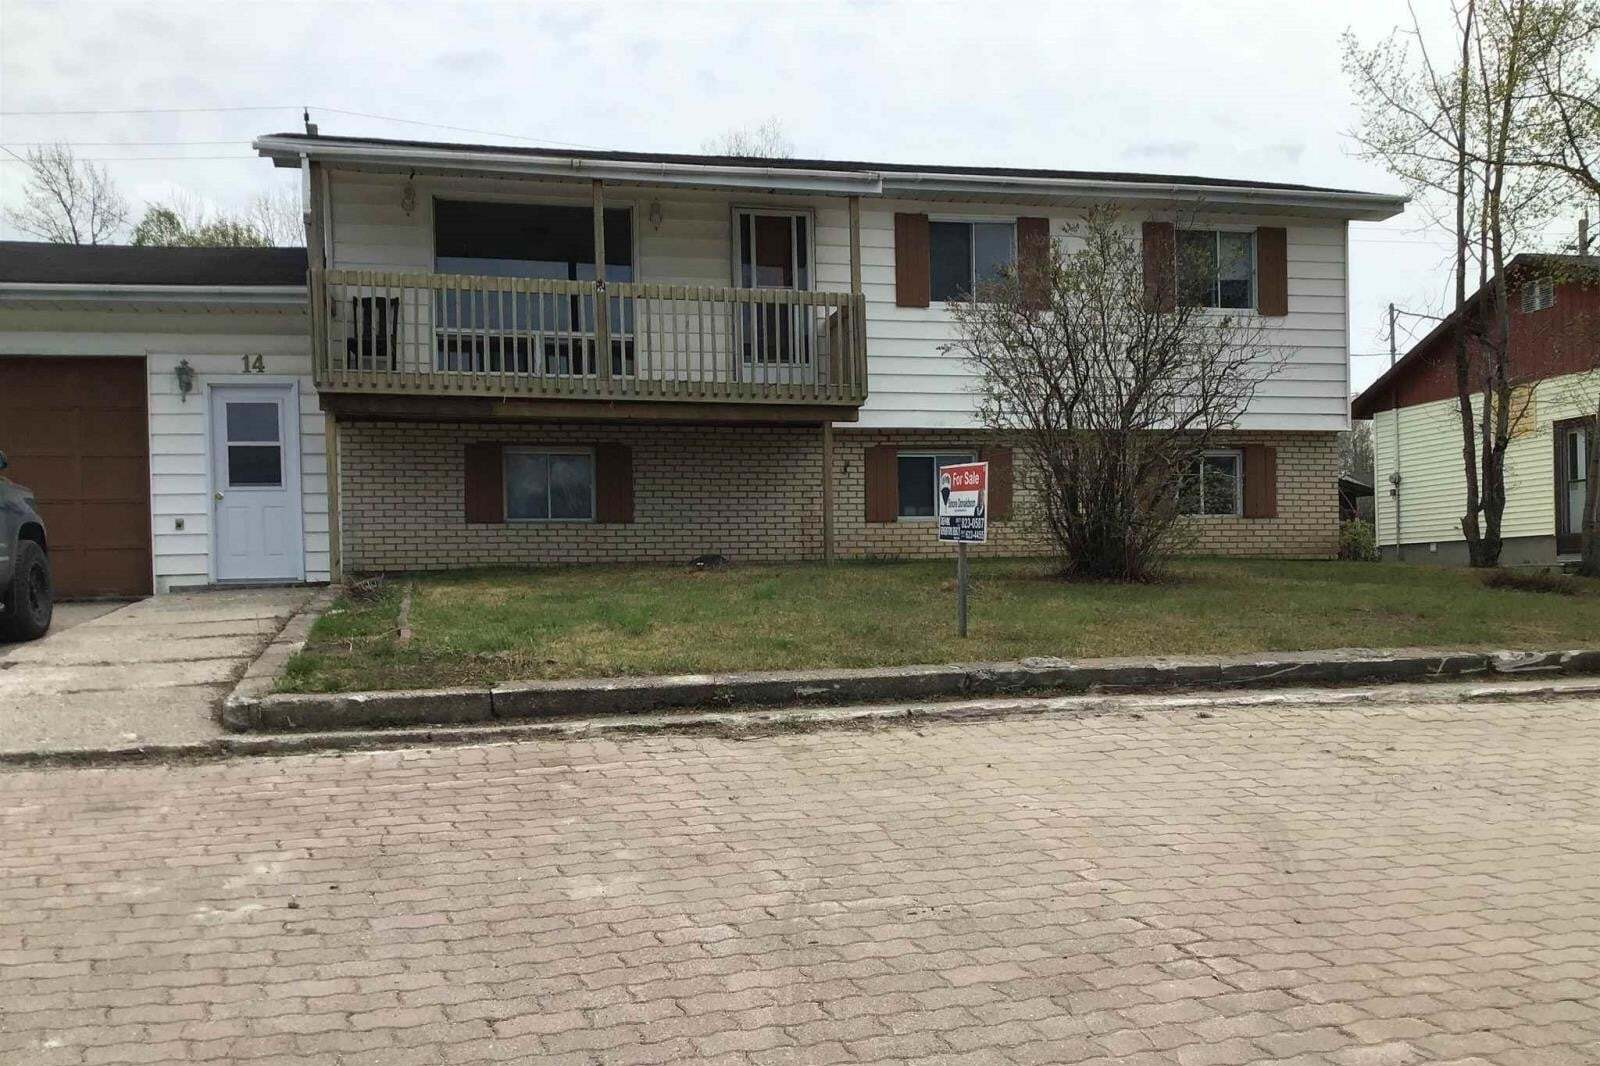 House for sale at 14 Graham Dr Manitouwadge Ontario - MLS: TB200806